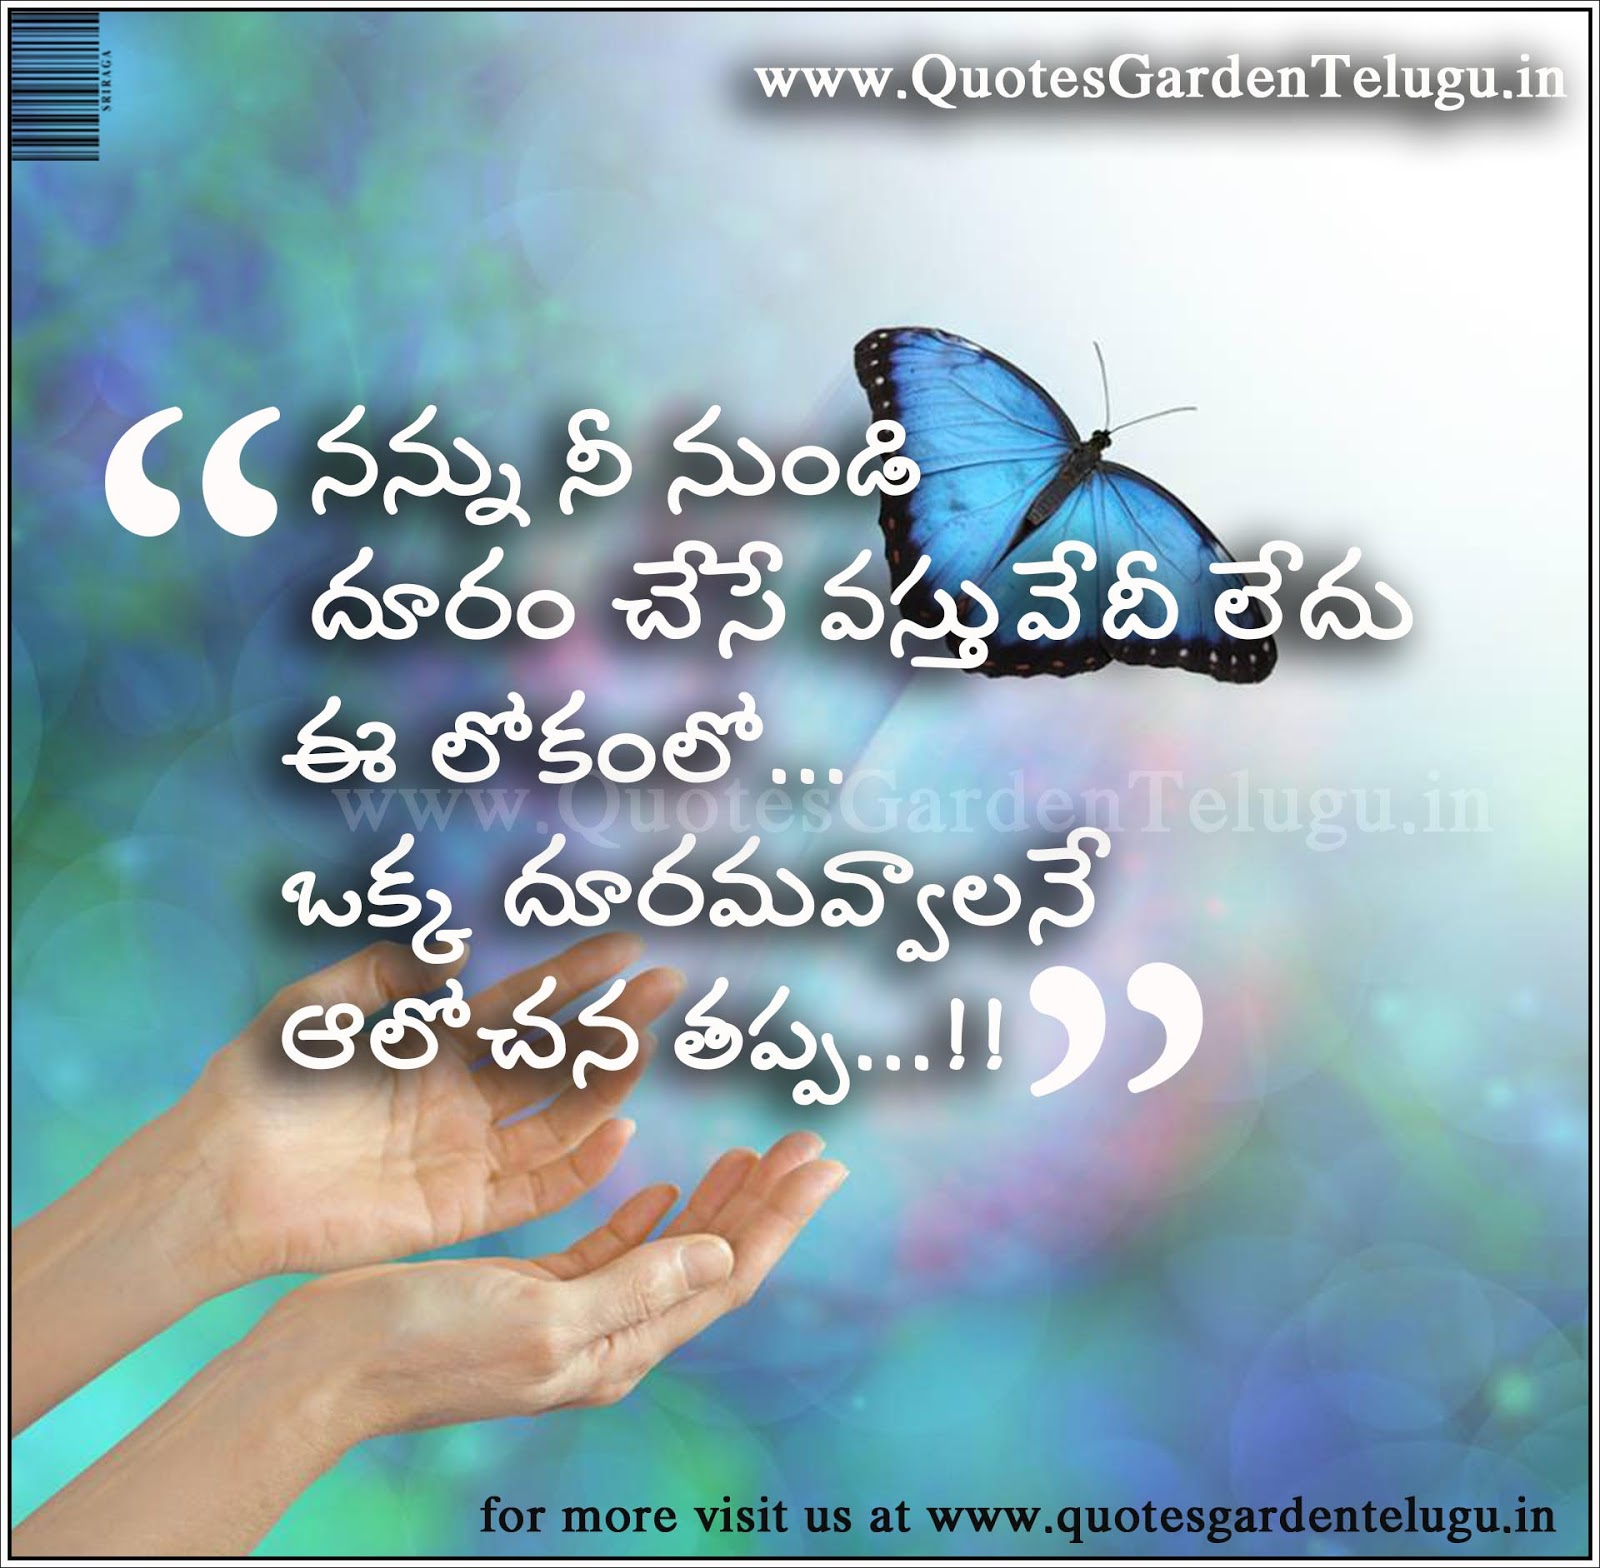 Telugu Love Quotes Captivating Best Telugu Heart Touching Love Quotes With Hd Images 652  Quotes